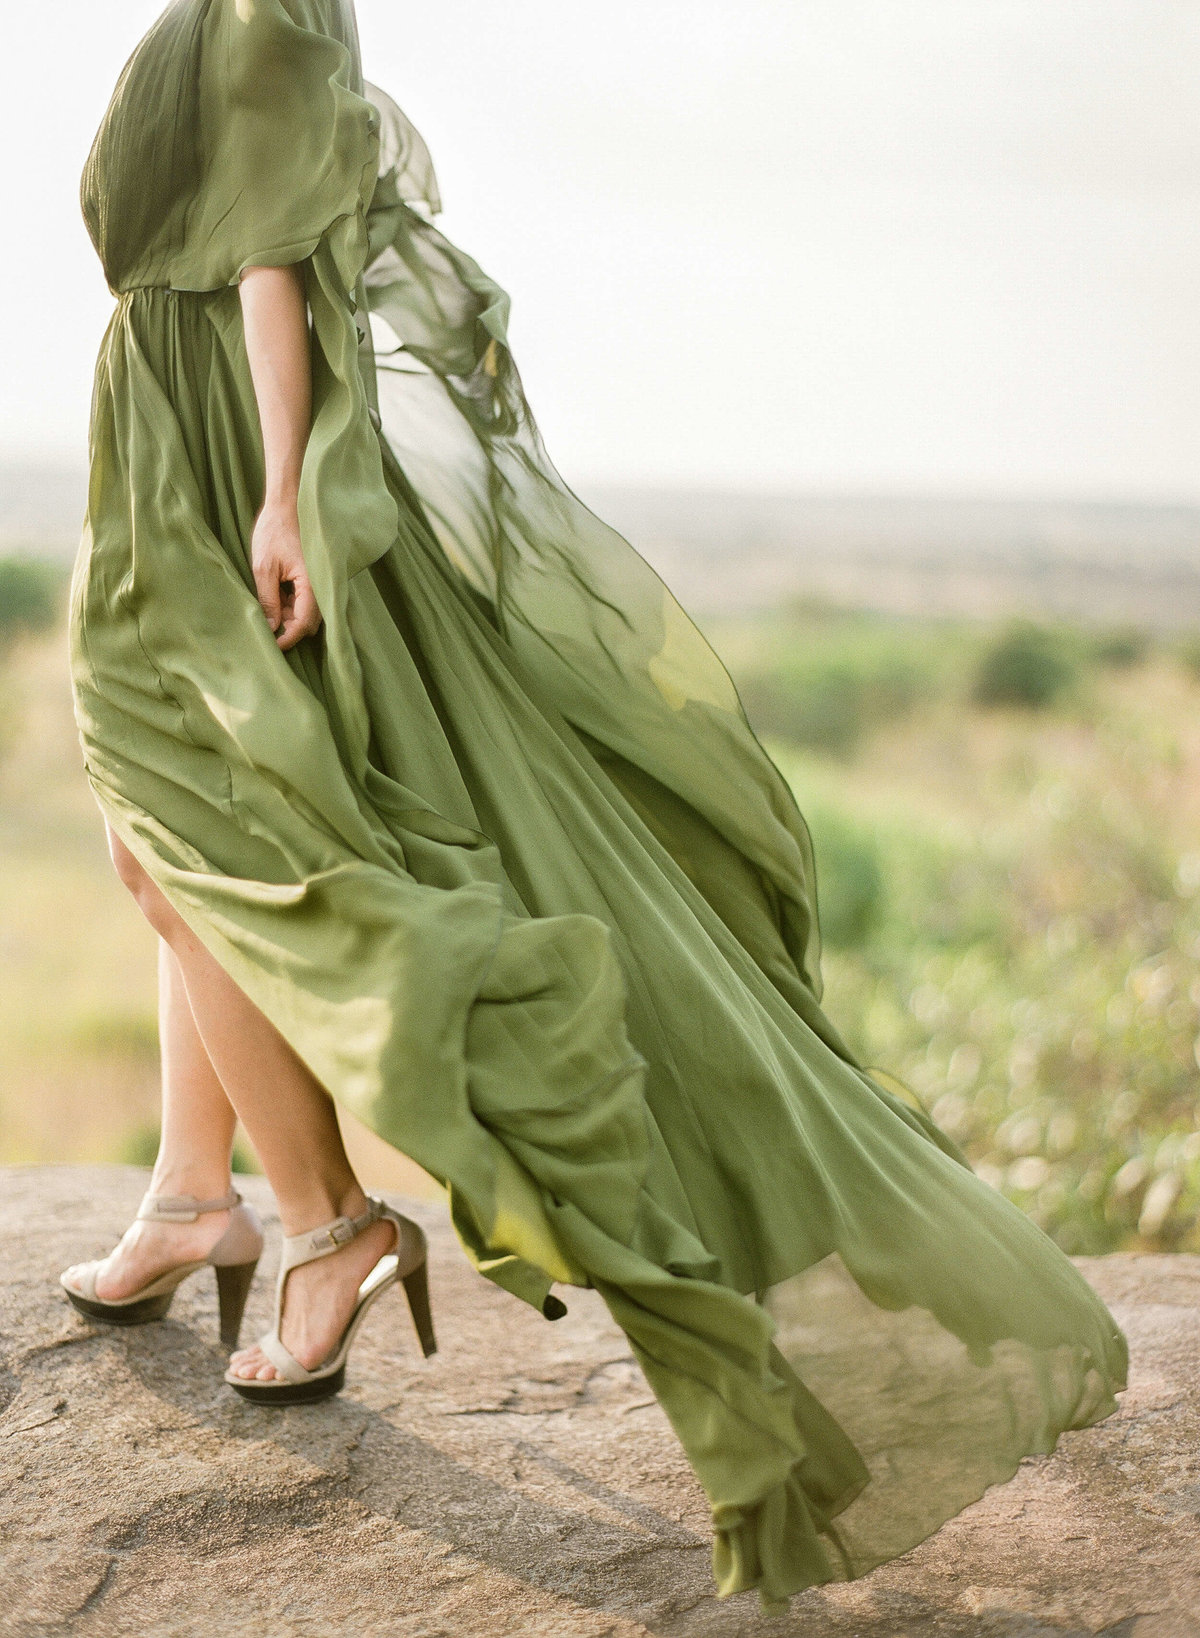 22-KTMerry-weddings-green-chiffon-gown